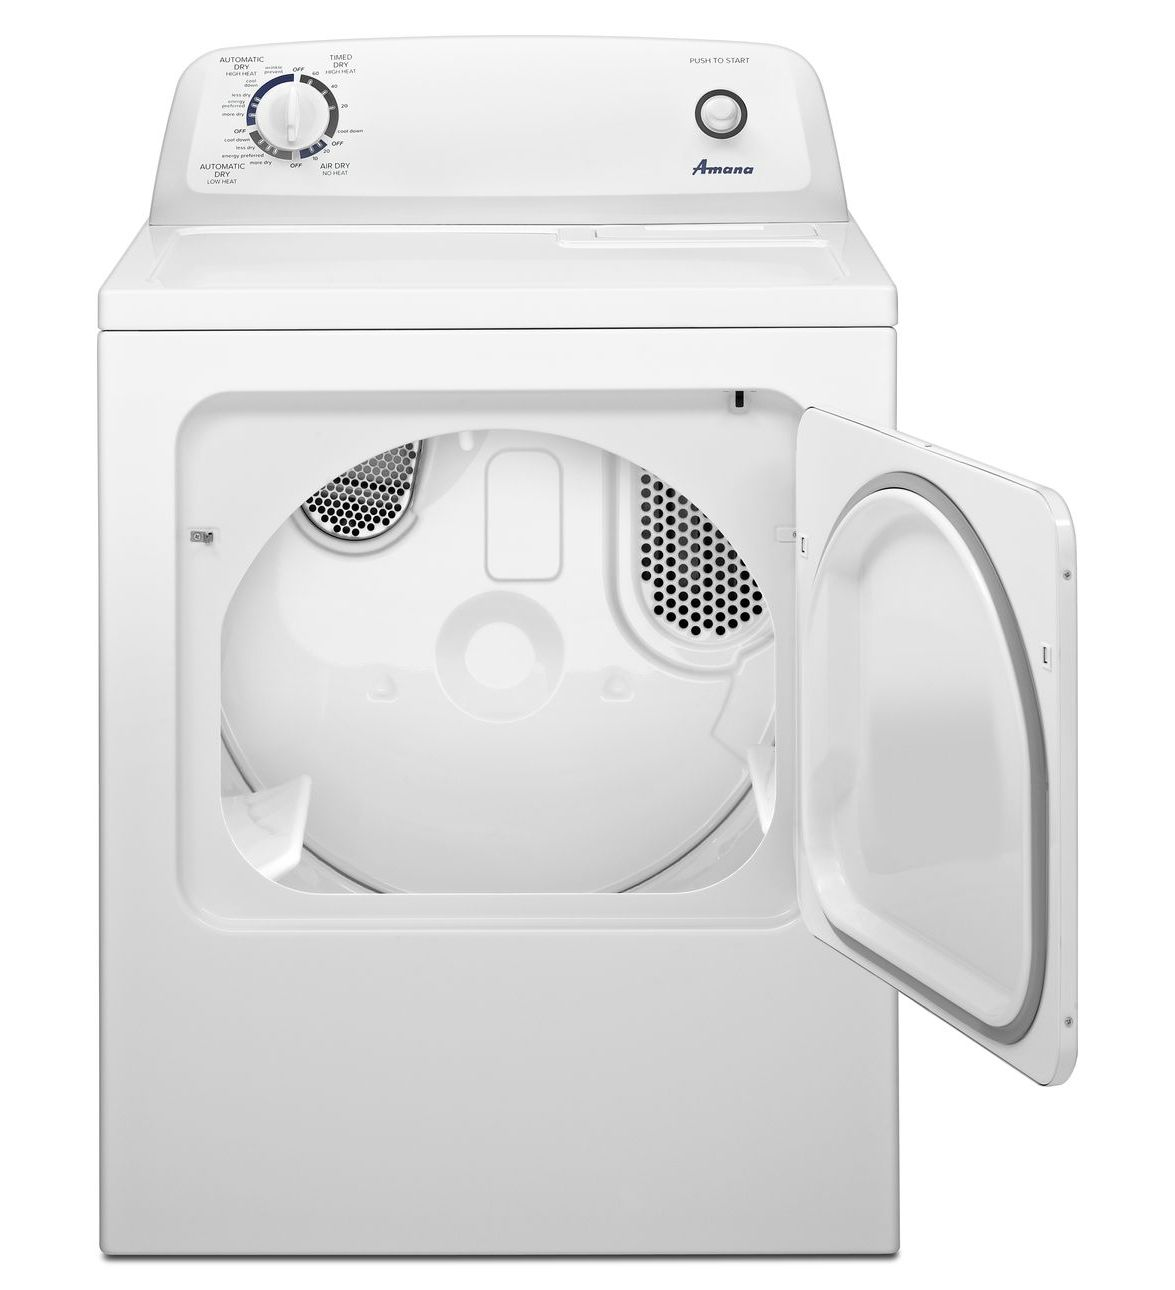 Ngd4655ew Amana 174 6 5 Cu Ft Top Load Gas Dryer With